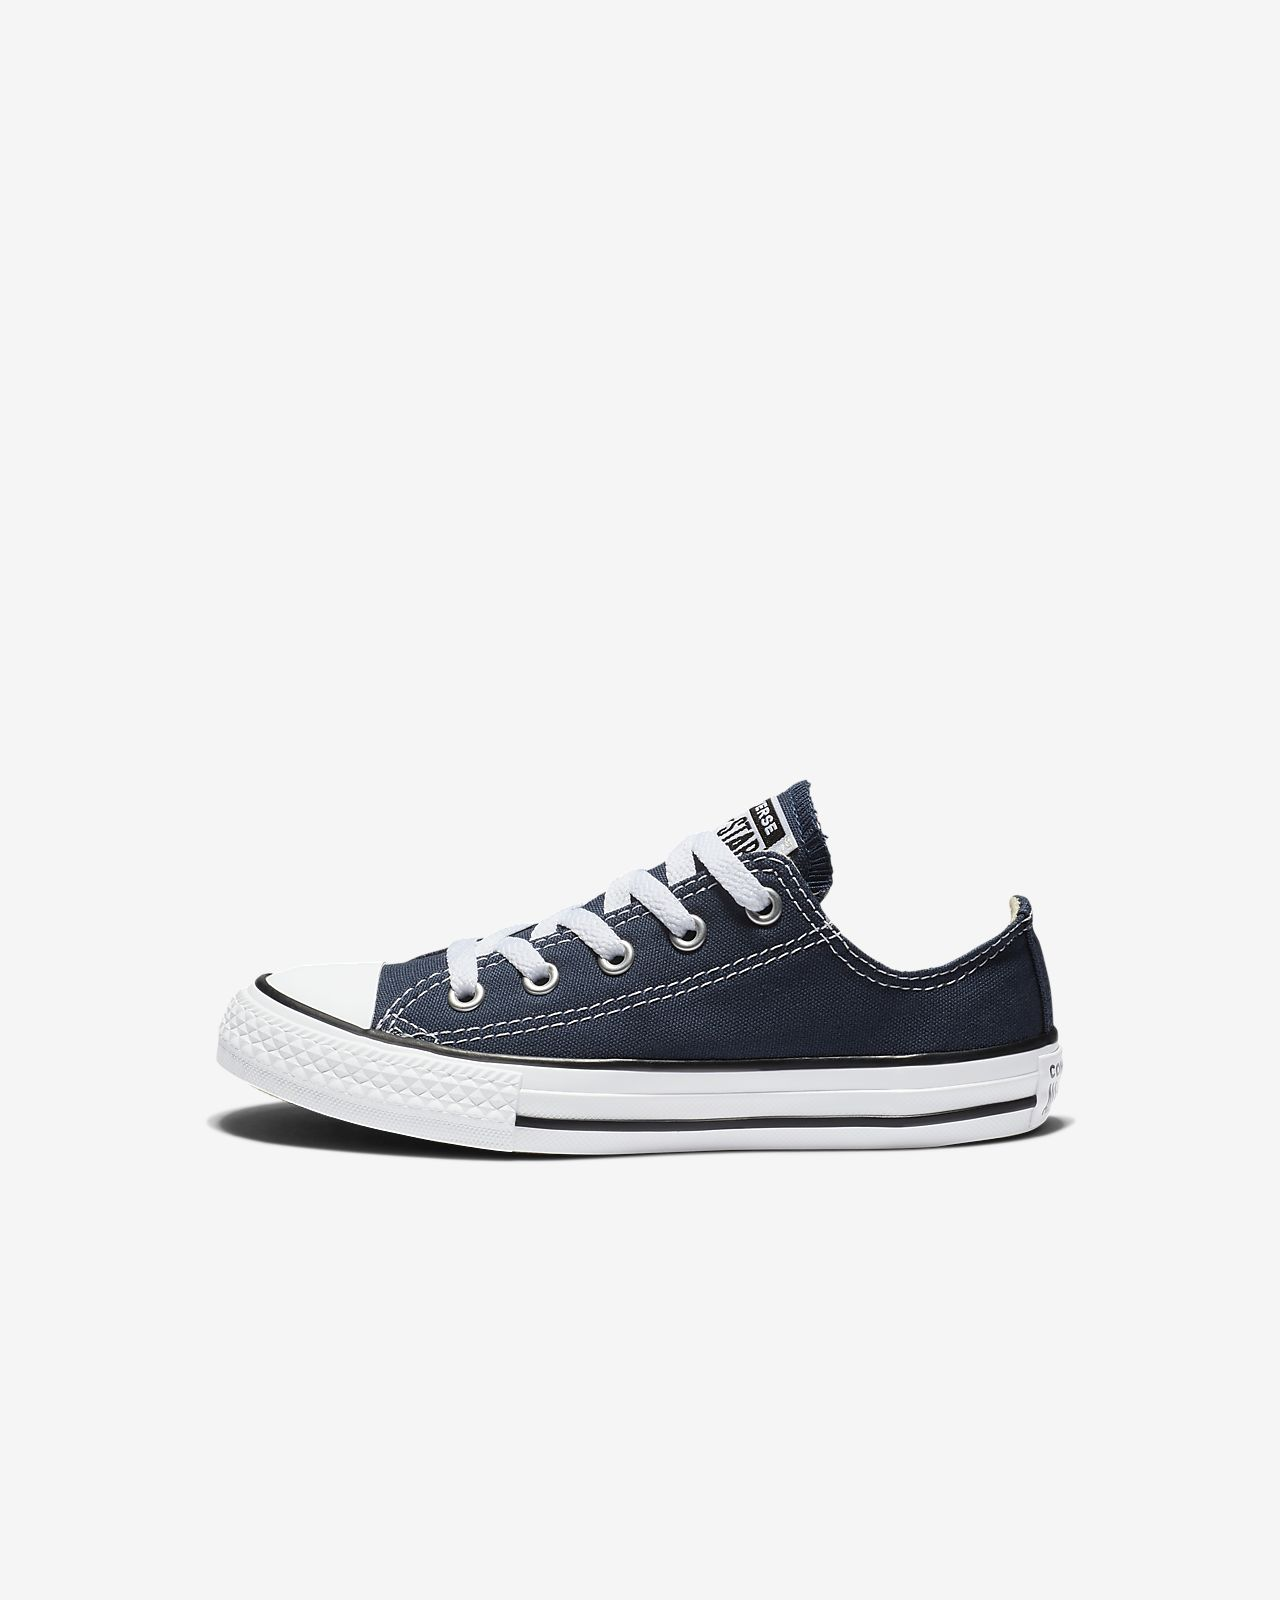 890968bfee2e Converse Chuck Taylor All Star Low Top (10.5c-3y) Little Kids  Shoe ...